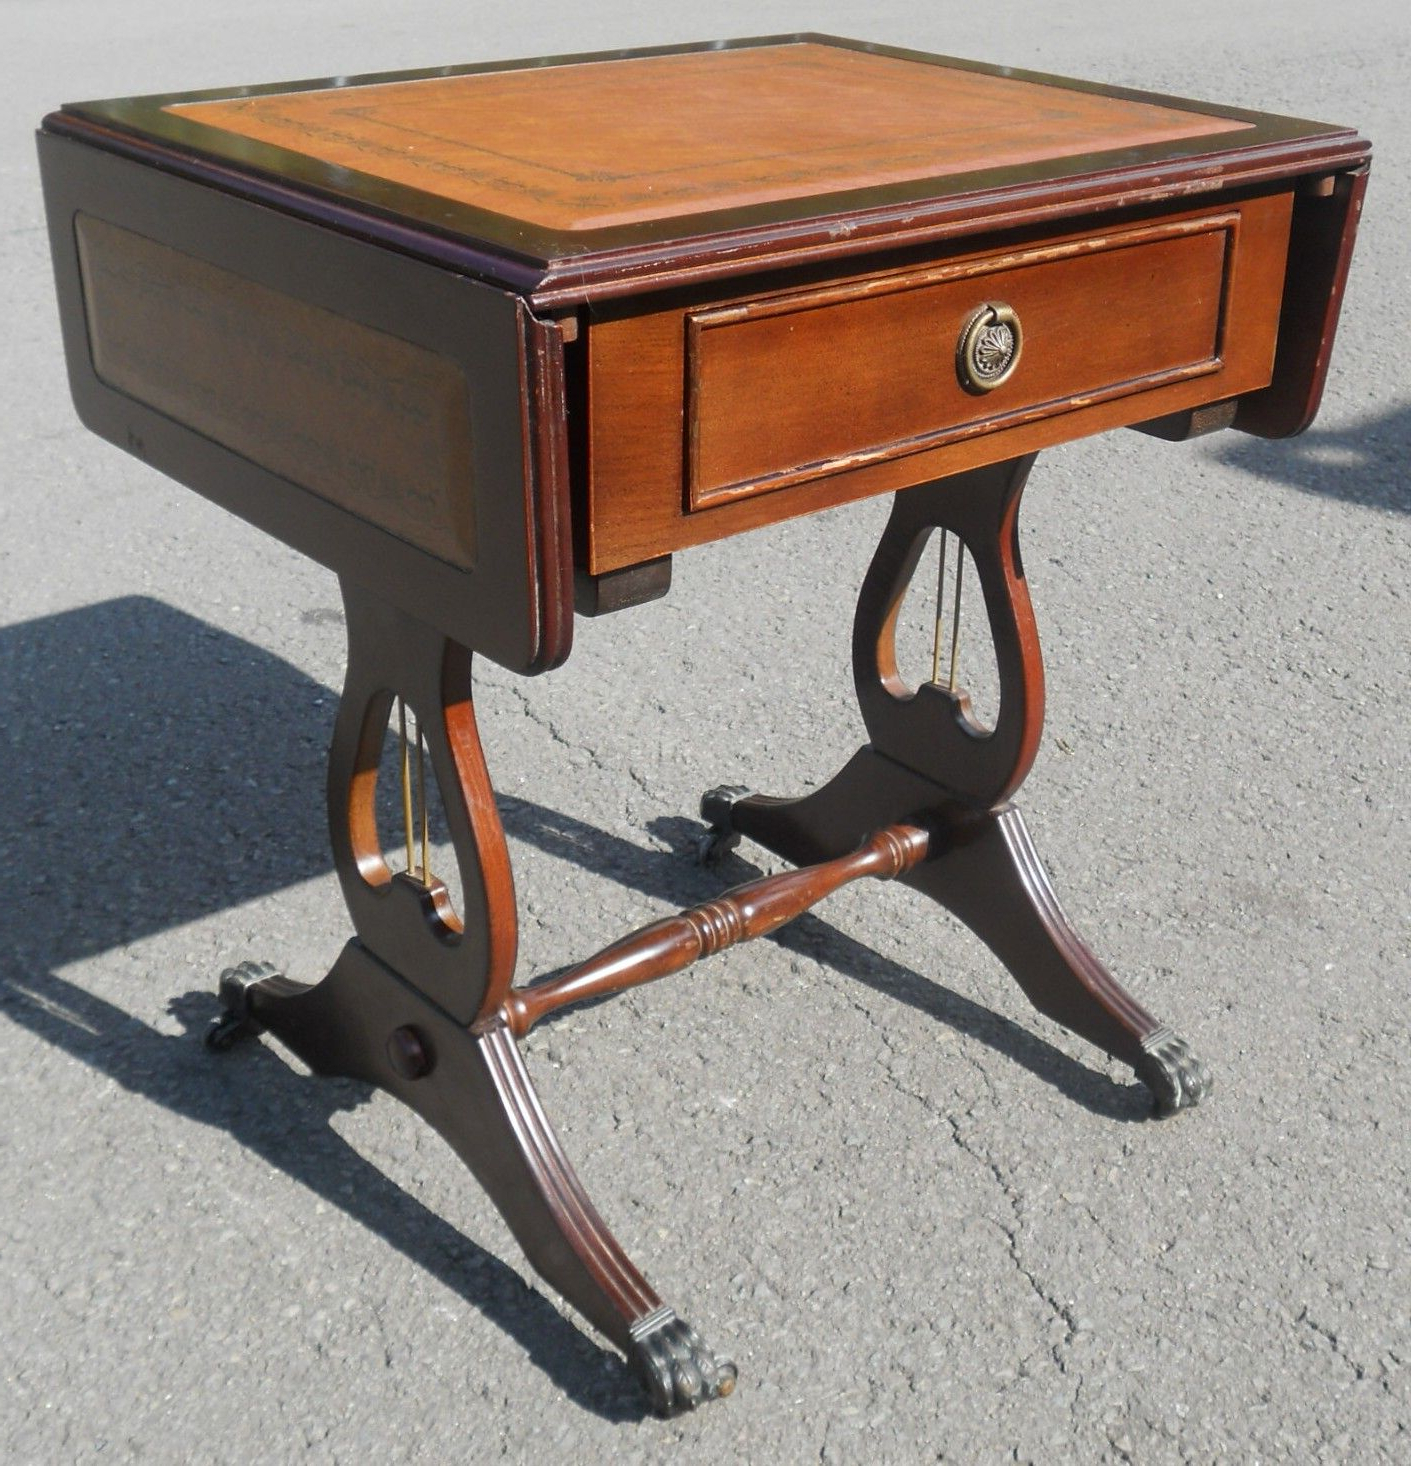 Lyre Coffee Tables Within Most Current Small Dropleaf Regency Style Coffee Table (View 13 of 20)